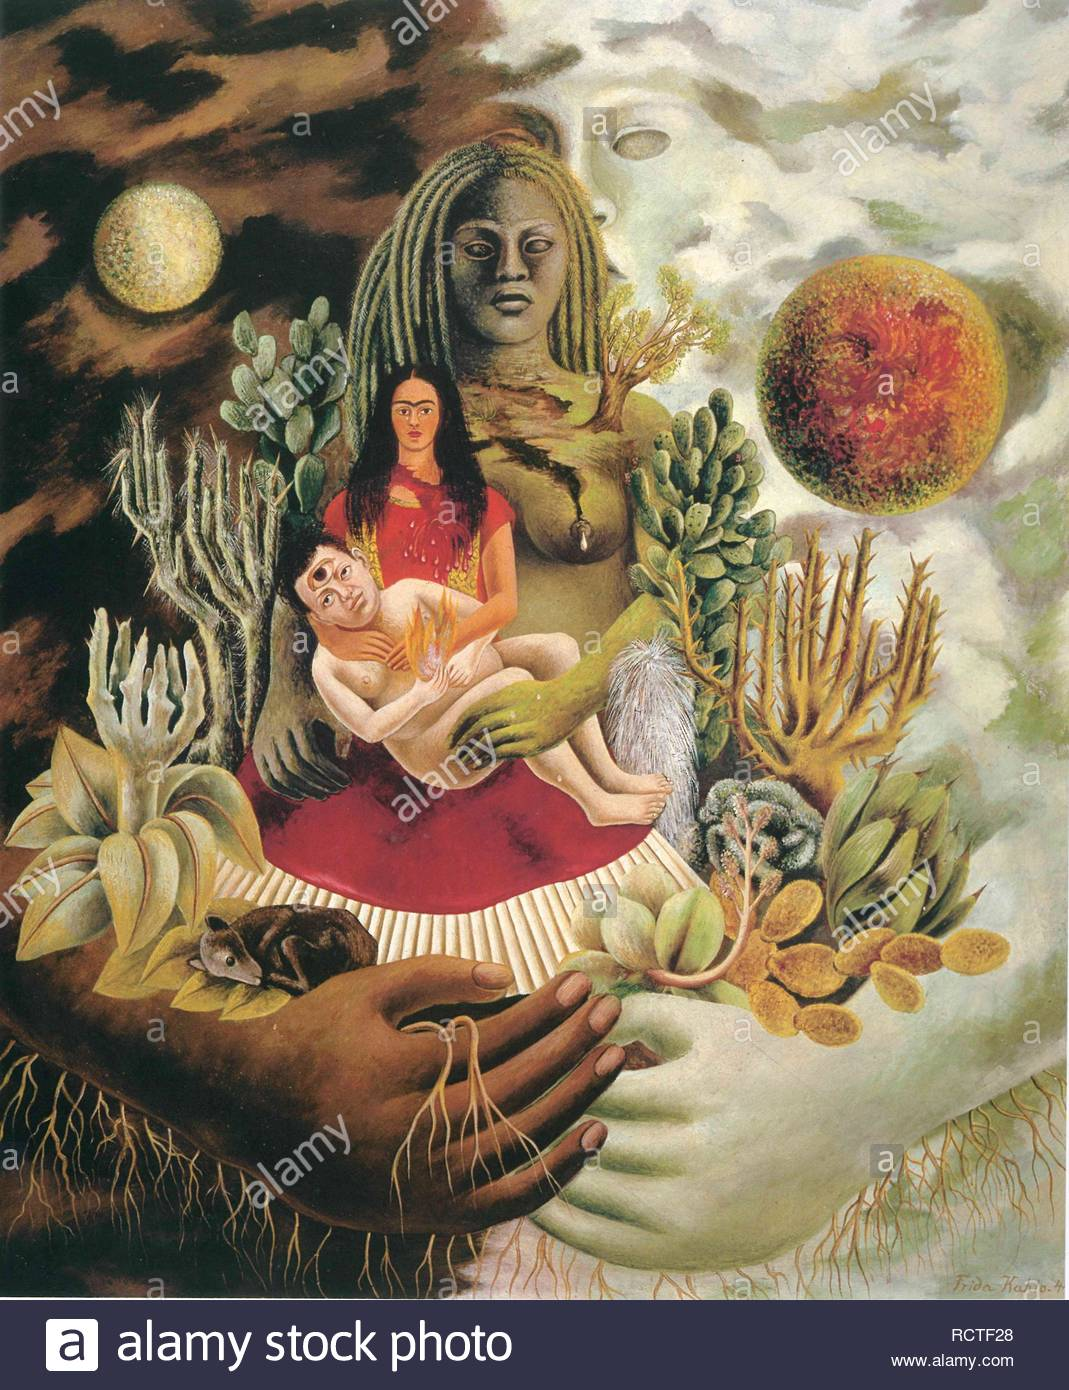 Arte En Mexico Moderno Y Contemporaneo The Love Embrace Of The Universe The Earth Mexico Myself